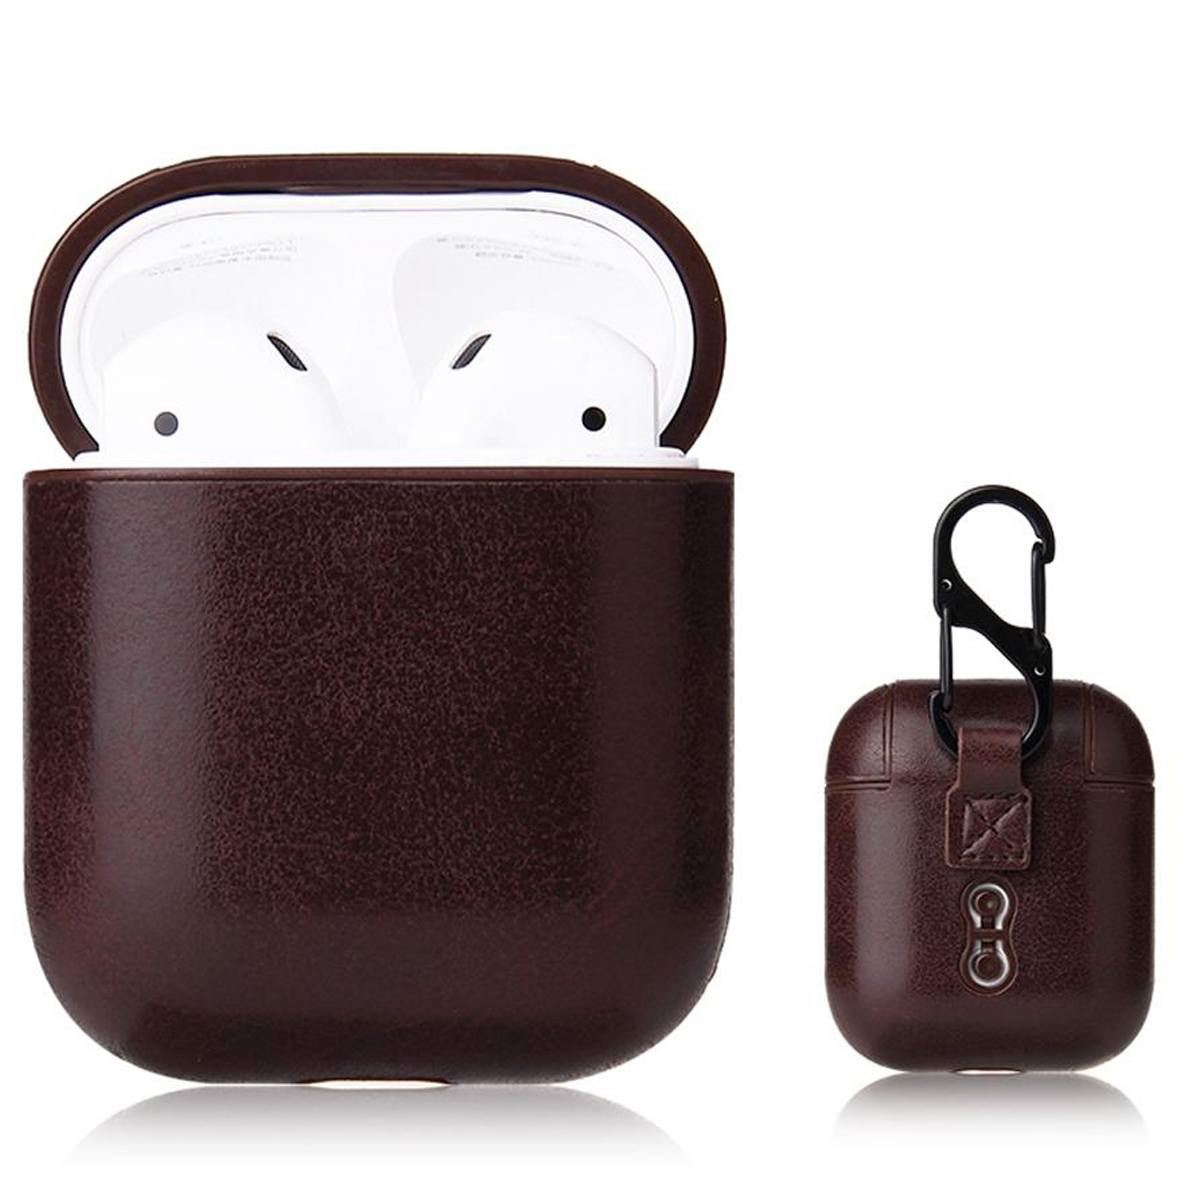 Case-For-Apple-Airpods-1-2-1st-2nd-Gen-Soft-Leather-Skin-Earphones-PU-Cover thumbnail 17